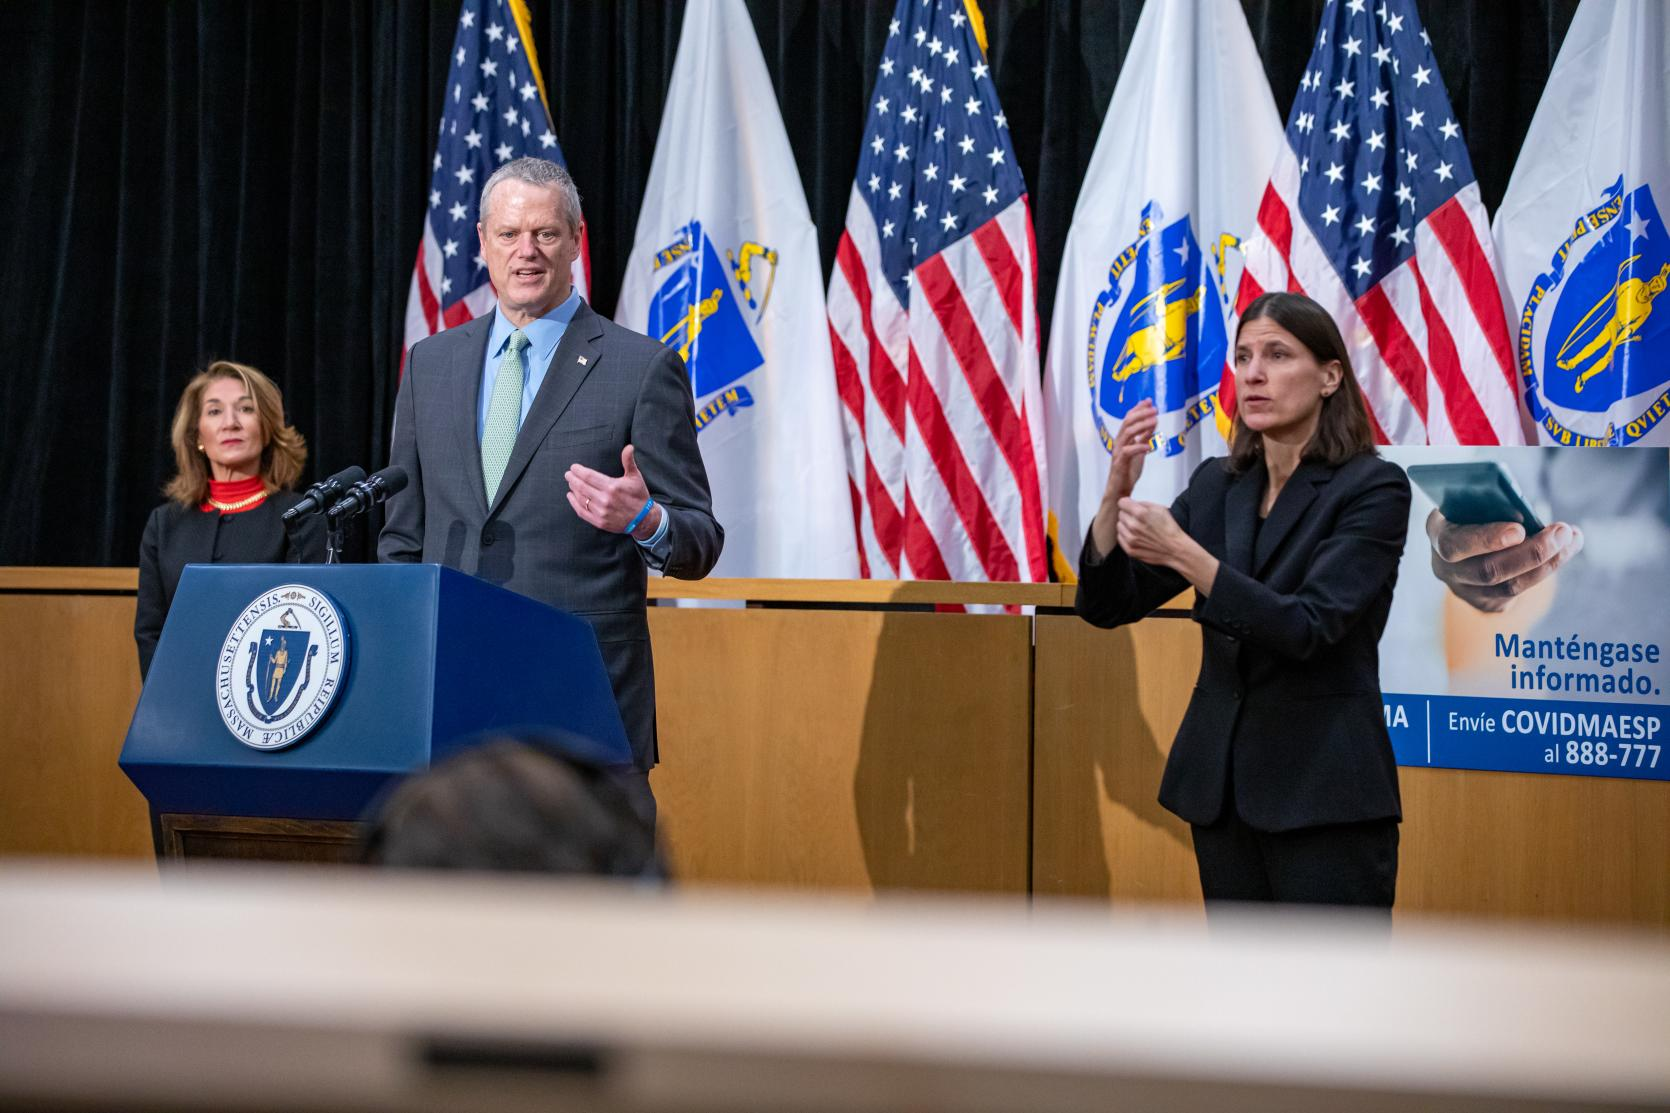 Baker-Polito Administration Announces New Funding, Outlines Ongoing Steps To Support Long-Term Care Facilities